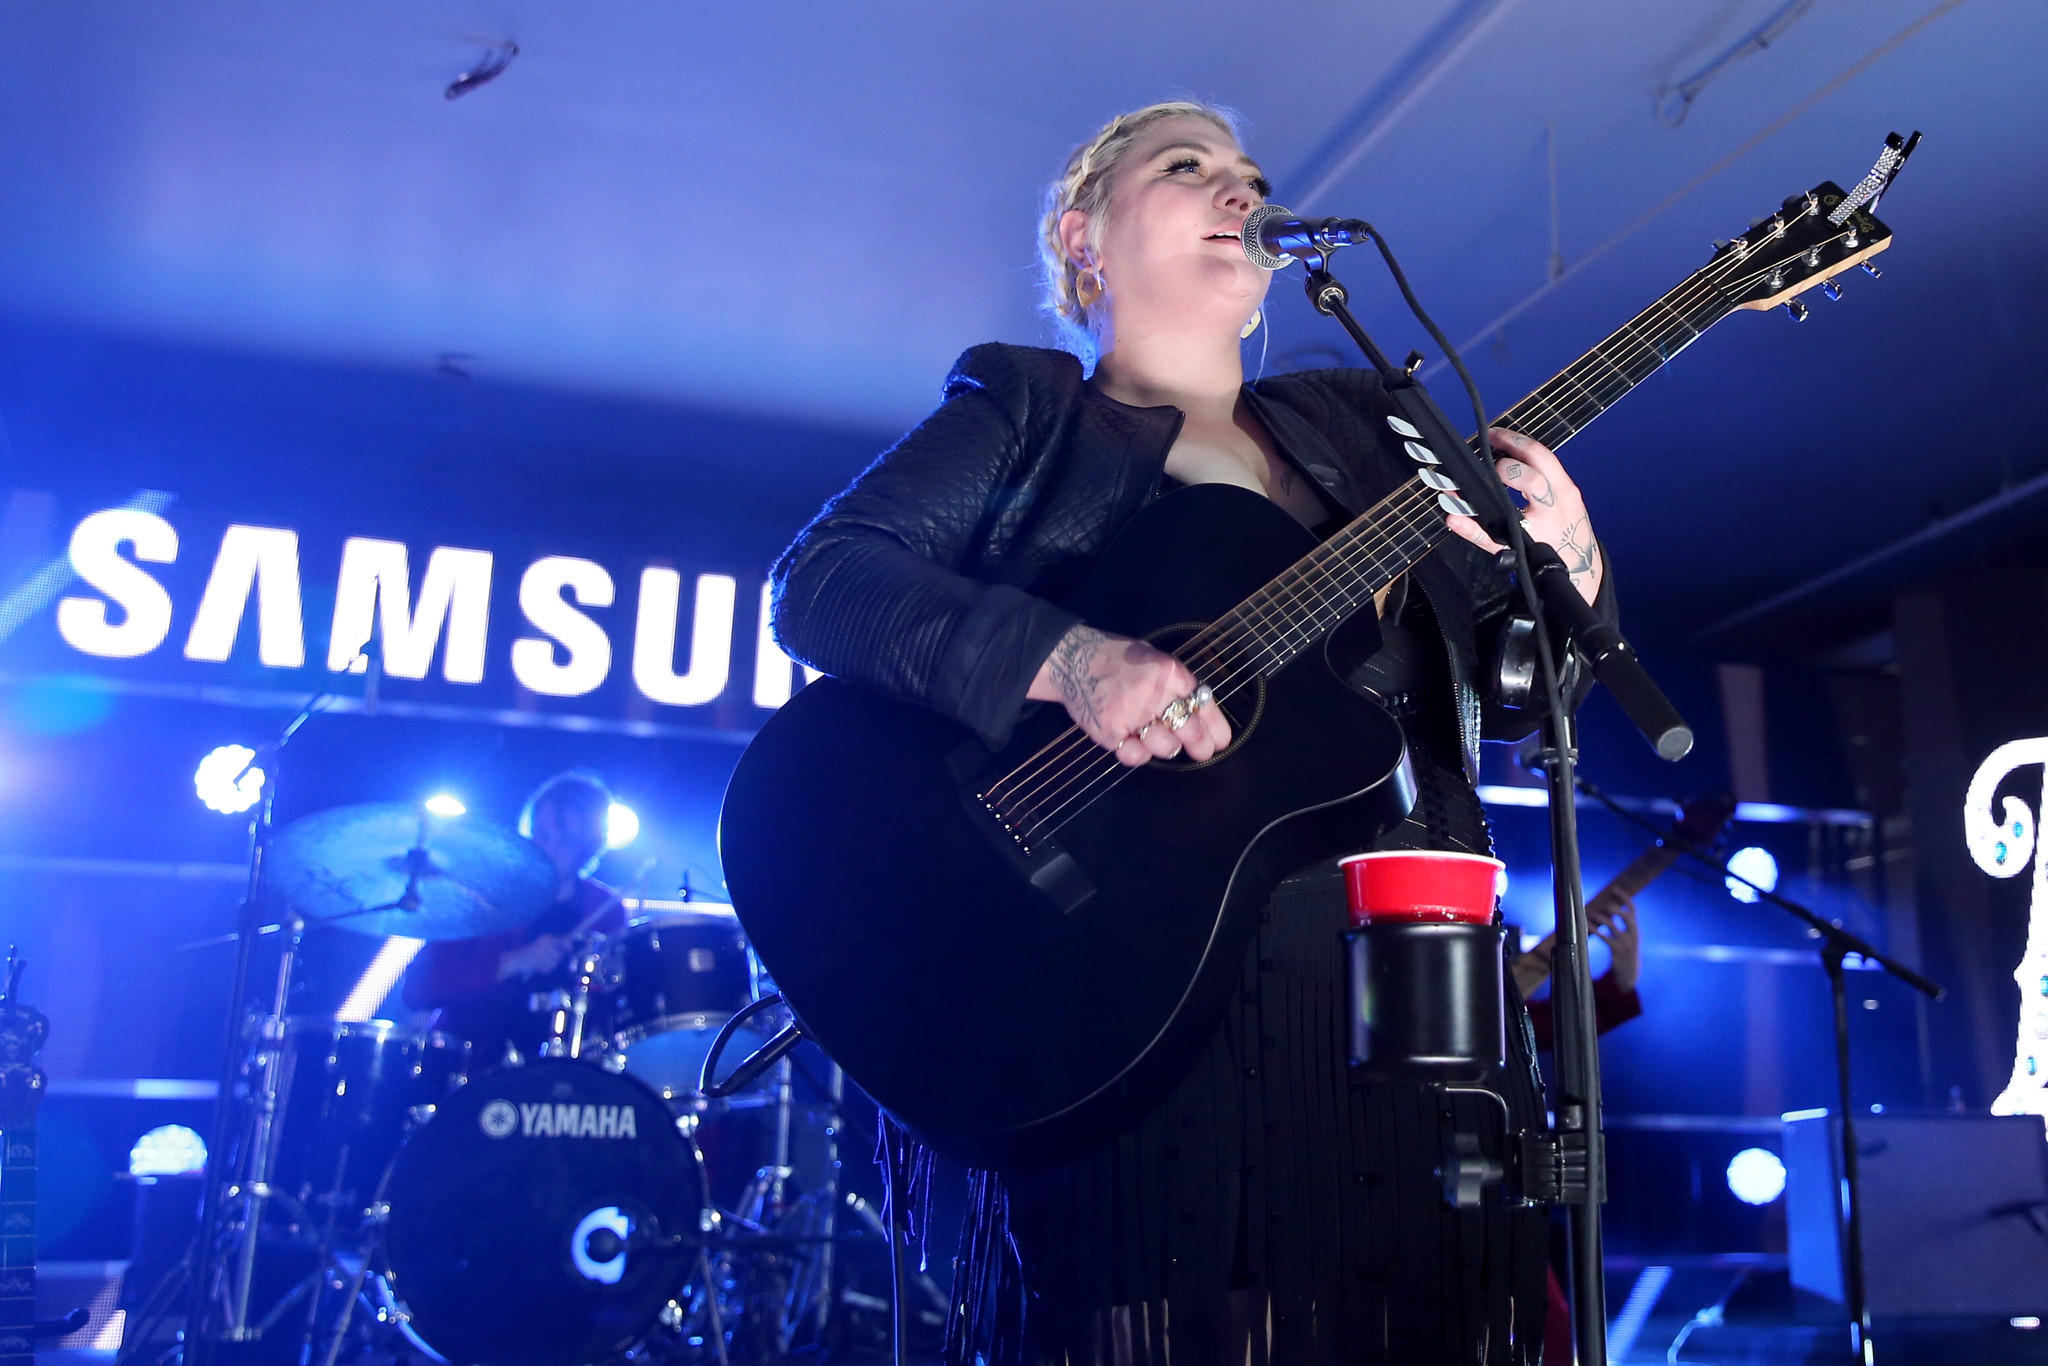 Singer Elle King performs onstage at Samsung Galaxy Life Fest (Jonathan Leibson / Getty Images)